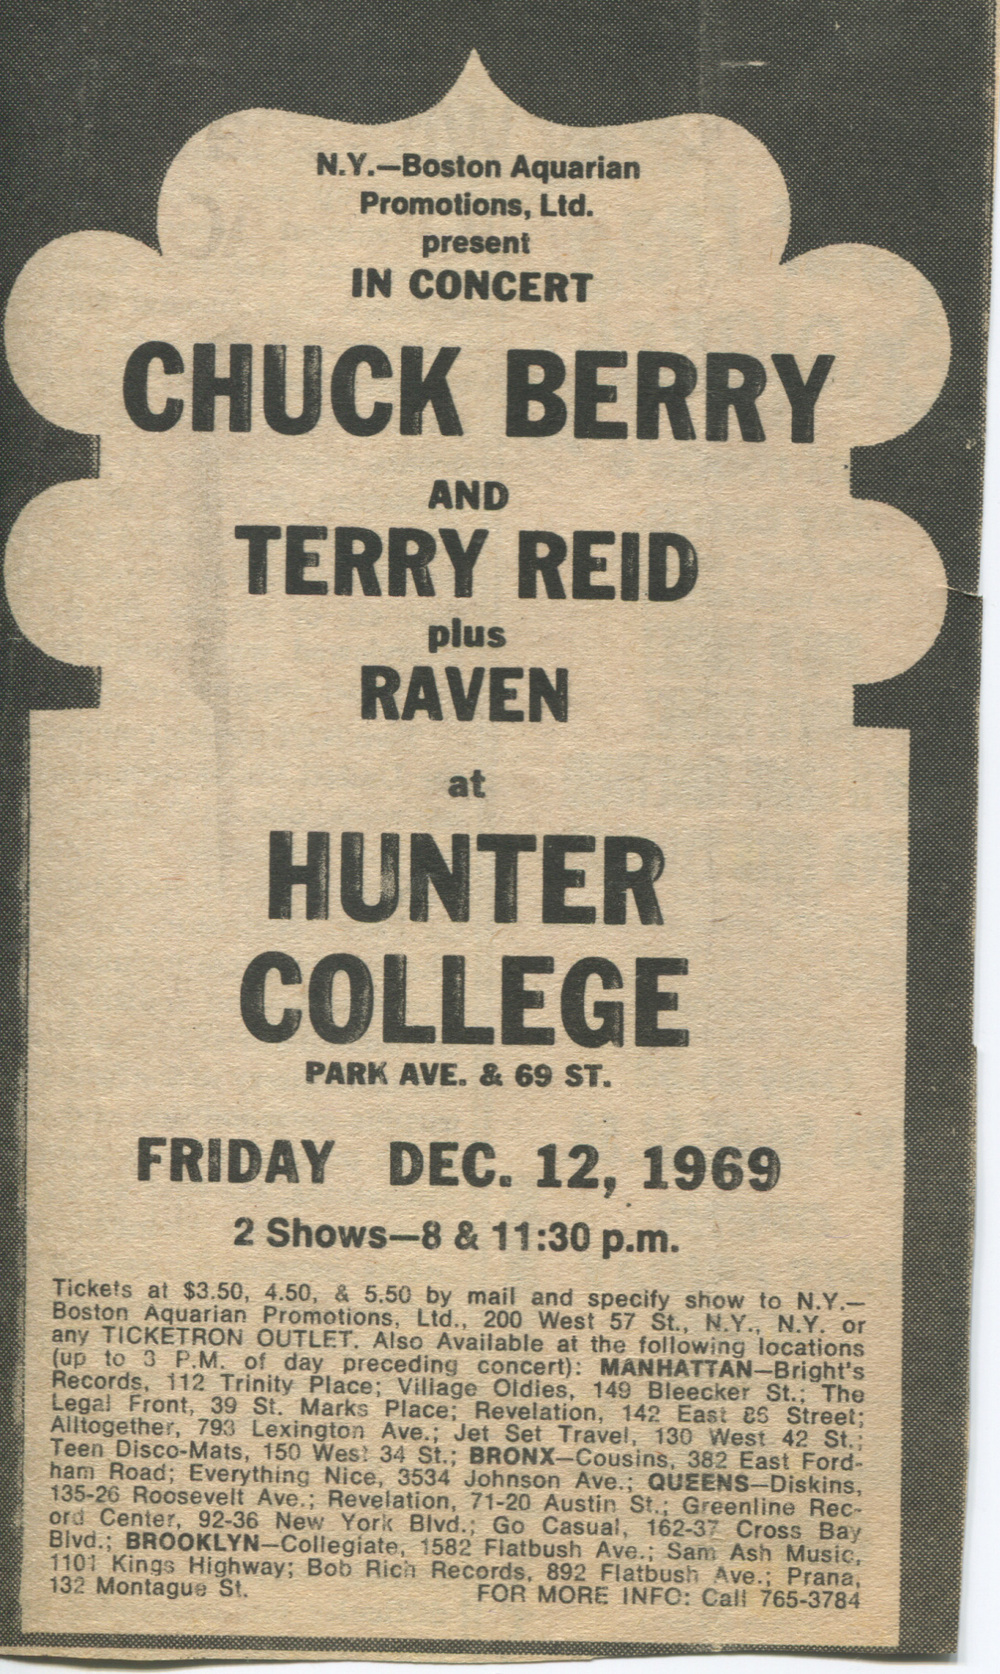 Chuck-Berry-and-Terry-Reid-Concert-Flyer.jpg